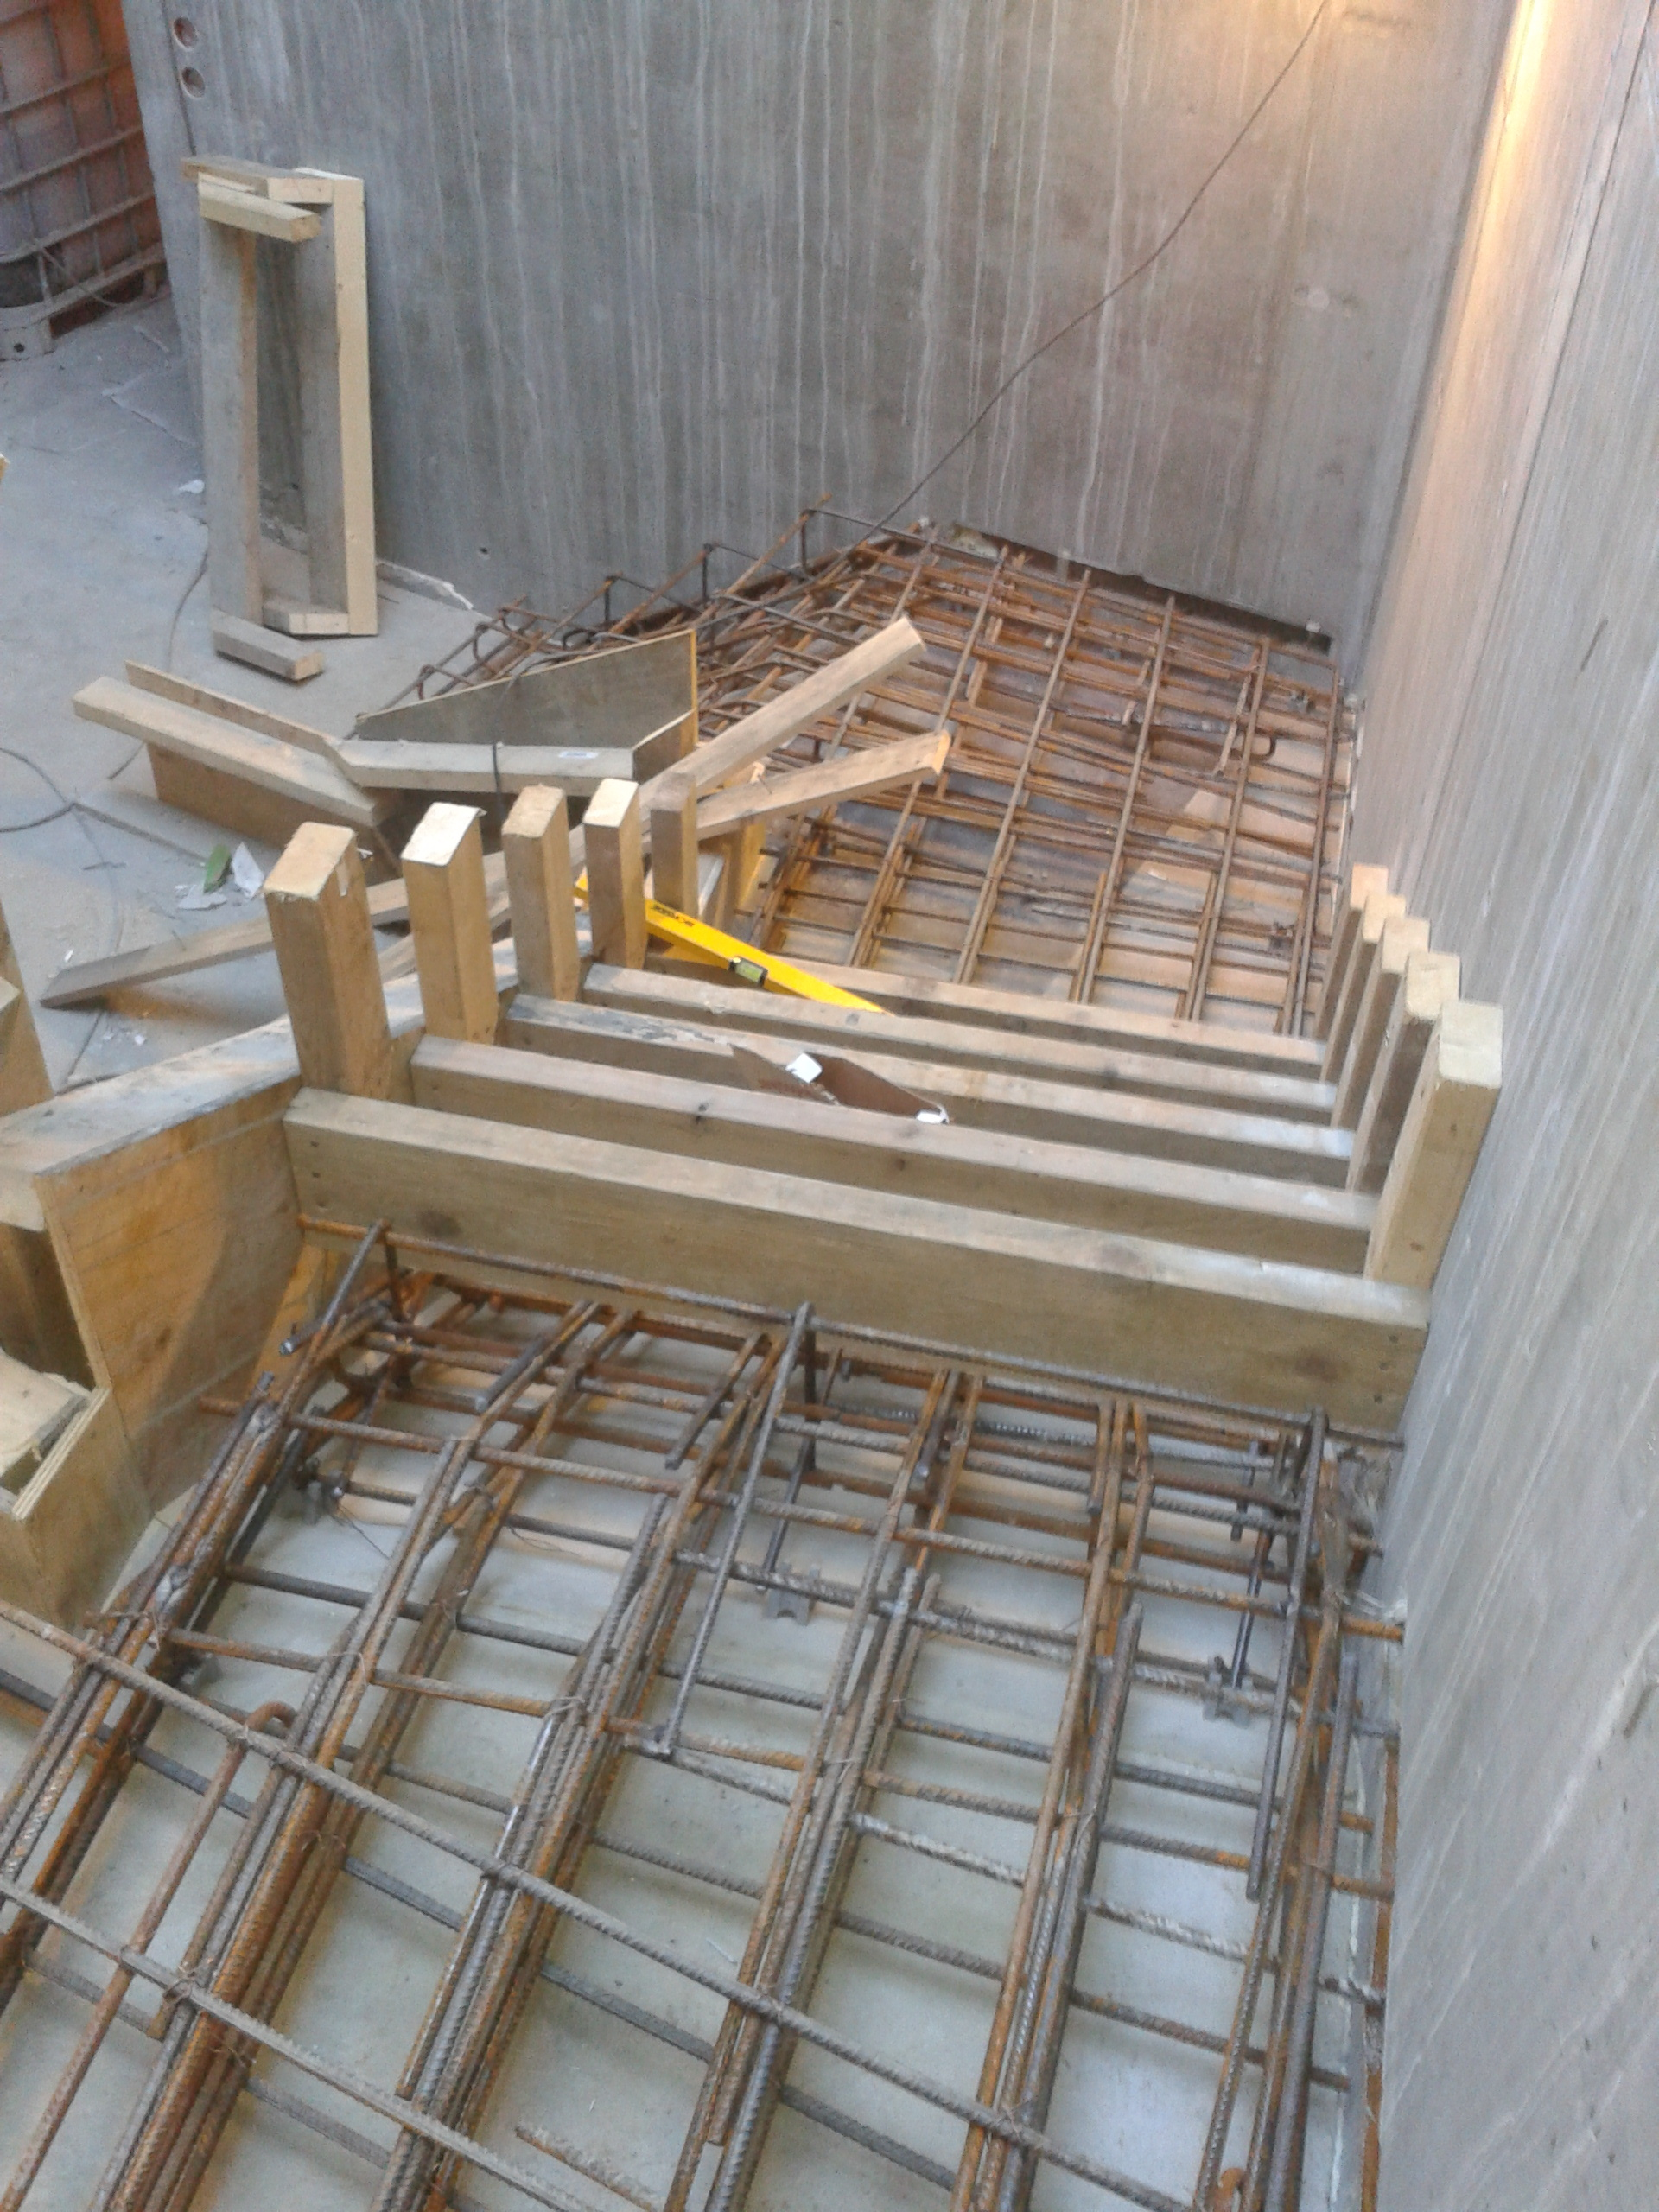 Stairwell - Stairwells are the type of stairs that requires most work, because u have to make the formwork for the underside, but in my mind it is the most fun stair to make.